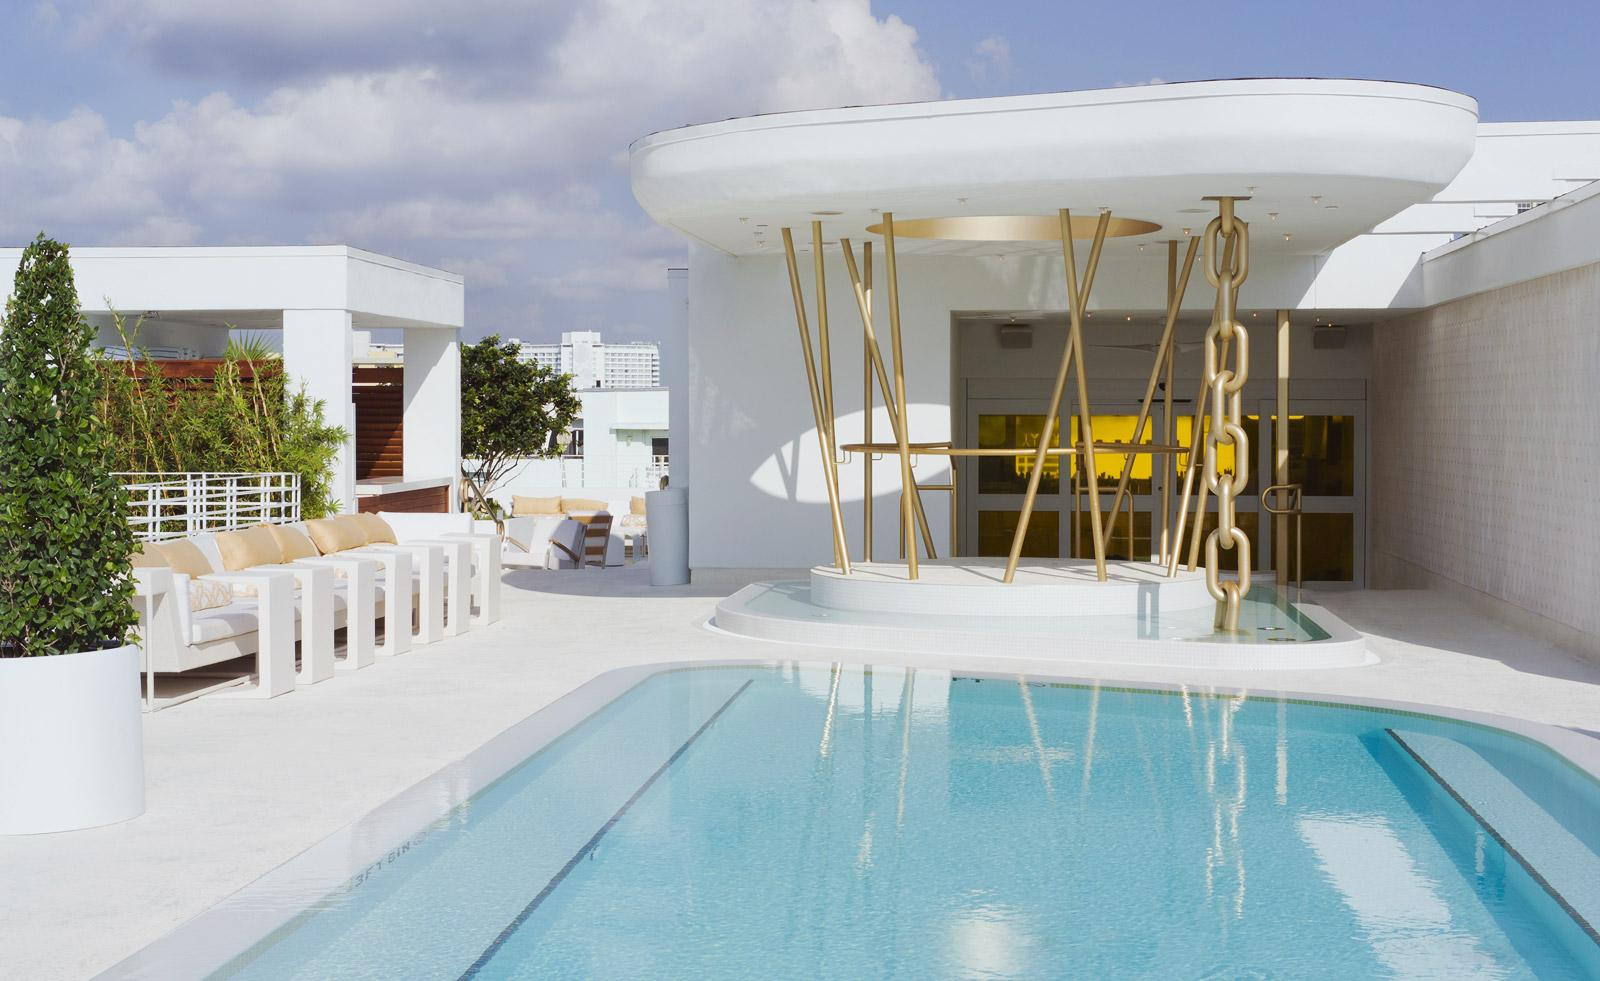 The Miami rooftop bars keeping us in high spirits